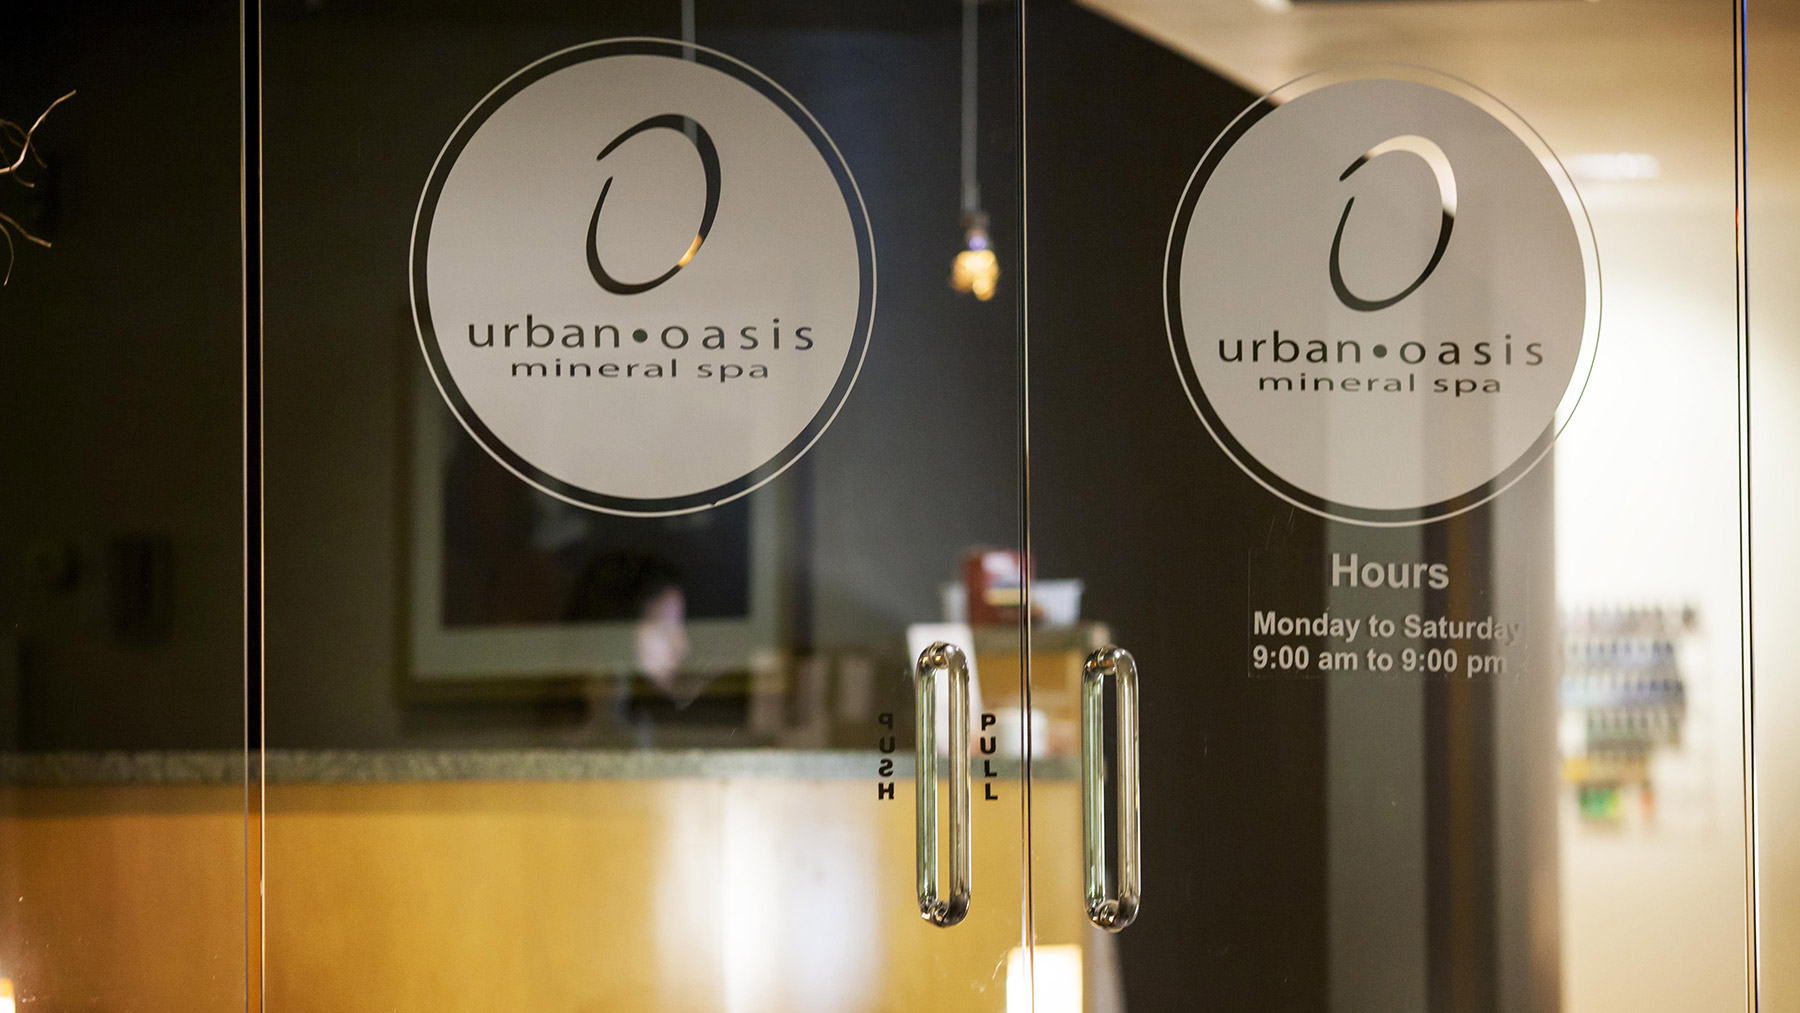 Urban Oasis Mineral Spa